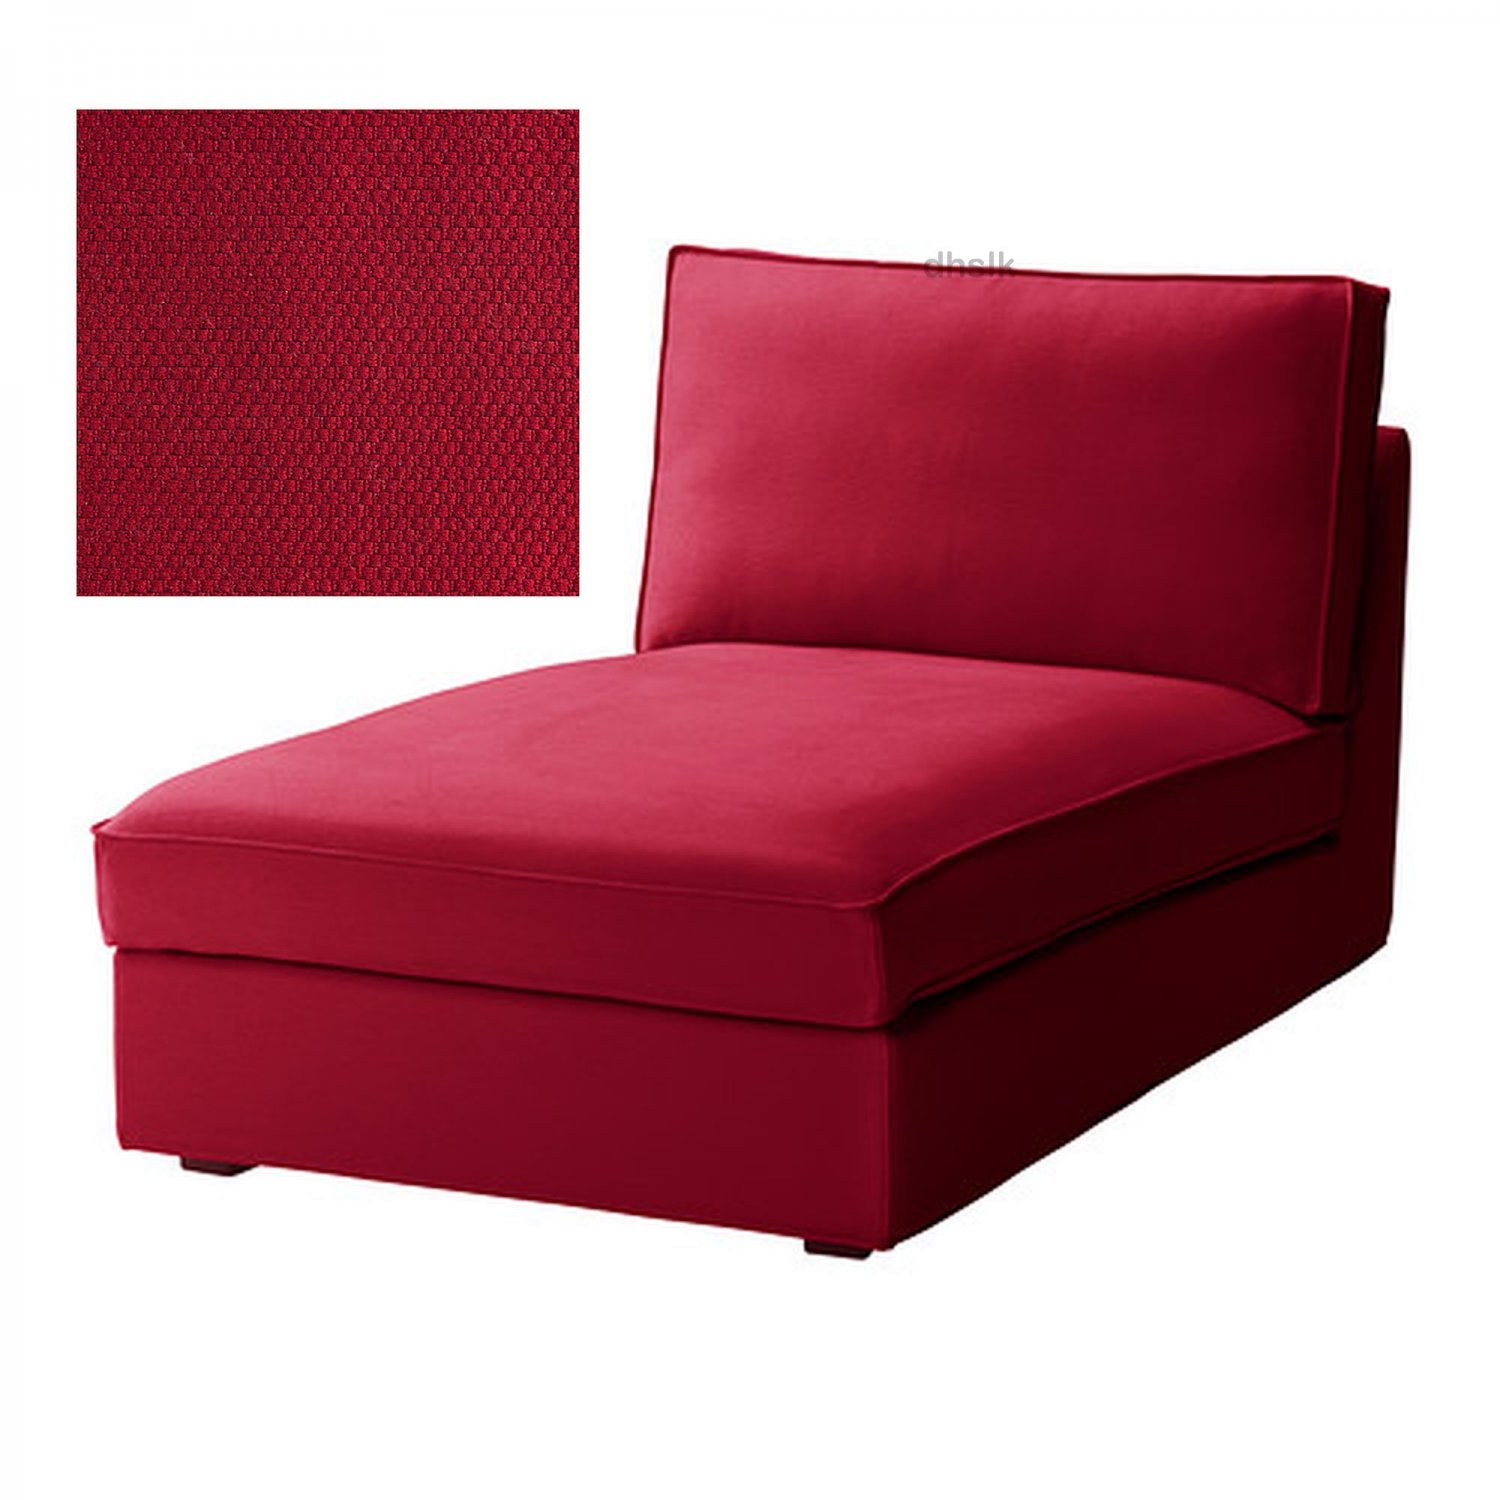 ikea kivik chaise slipcover cover dansbo medium red bezug housse. Black Bedroom Furniture Sets. Home Design Ideas